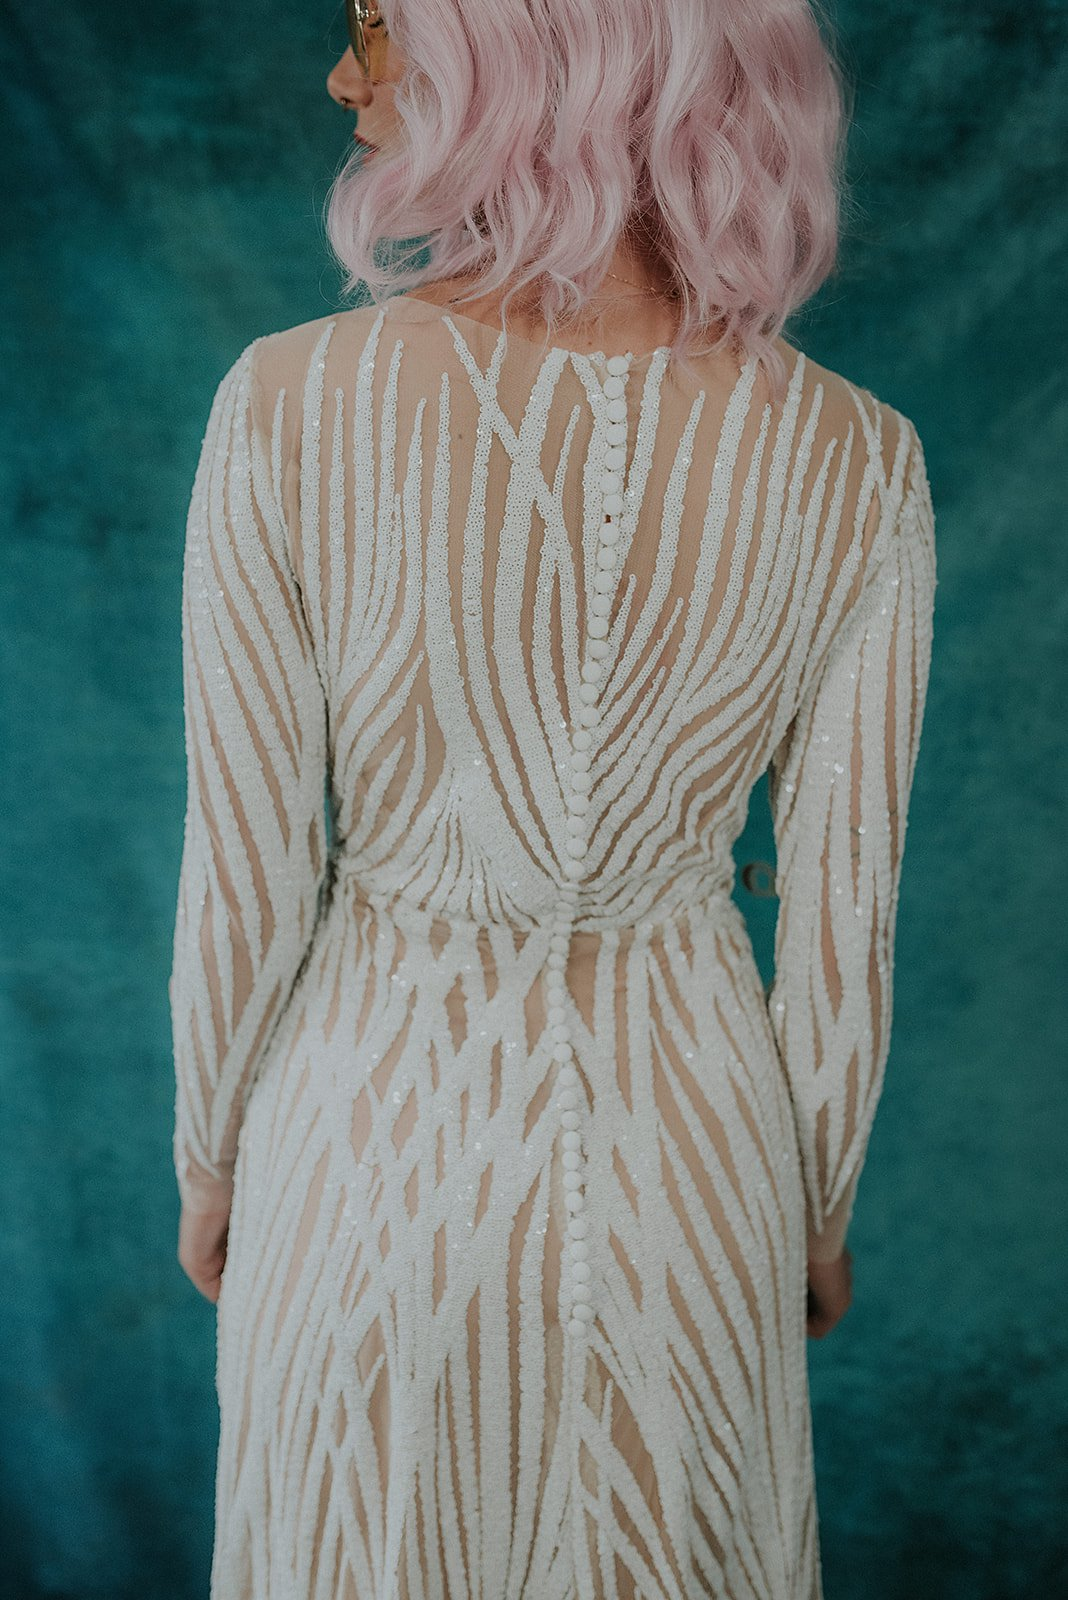 Lucy Cant Dance Cosmic Rodeo Alternative wedding dresses separates Megan Elle Photography 00011.jpg